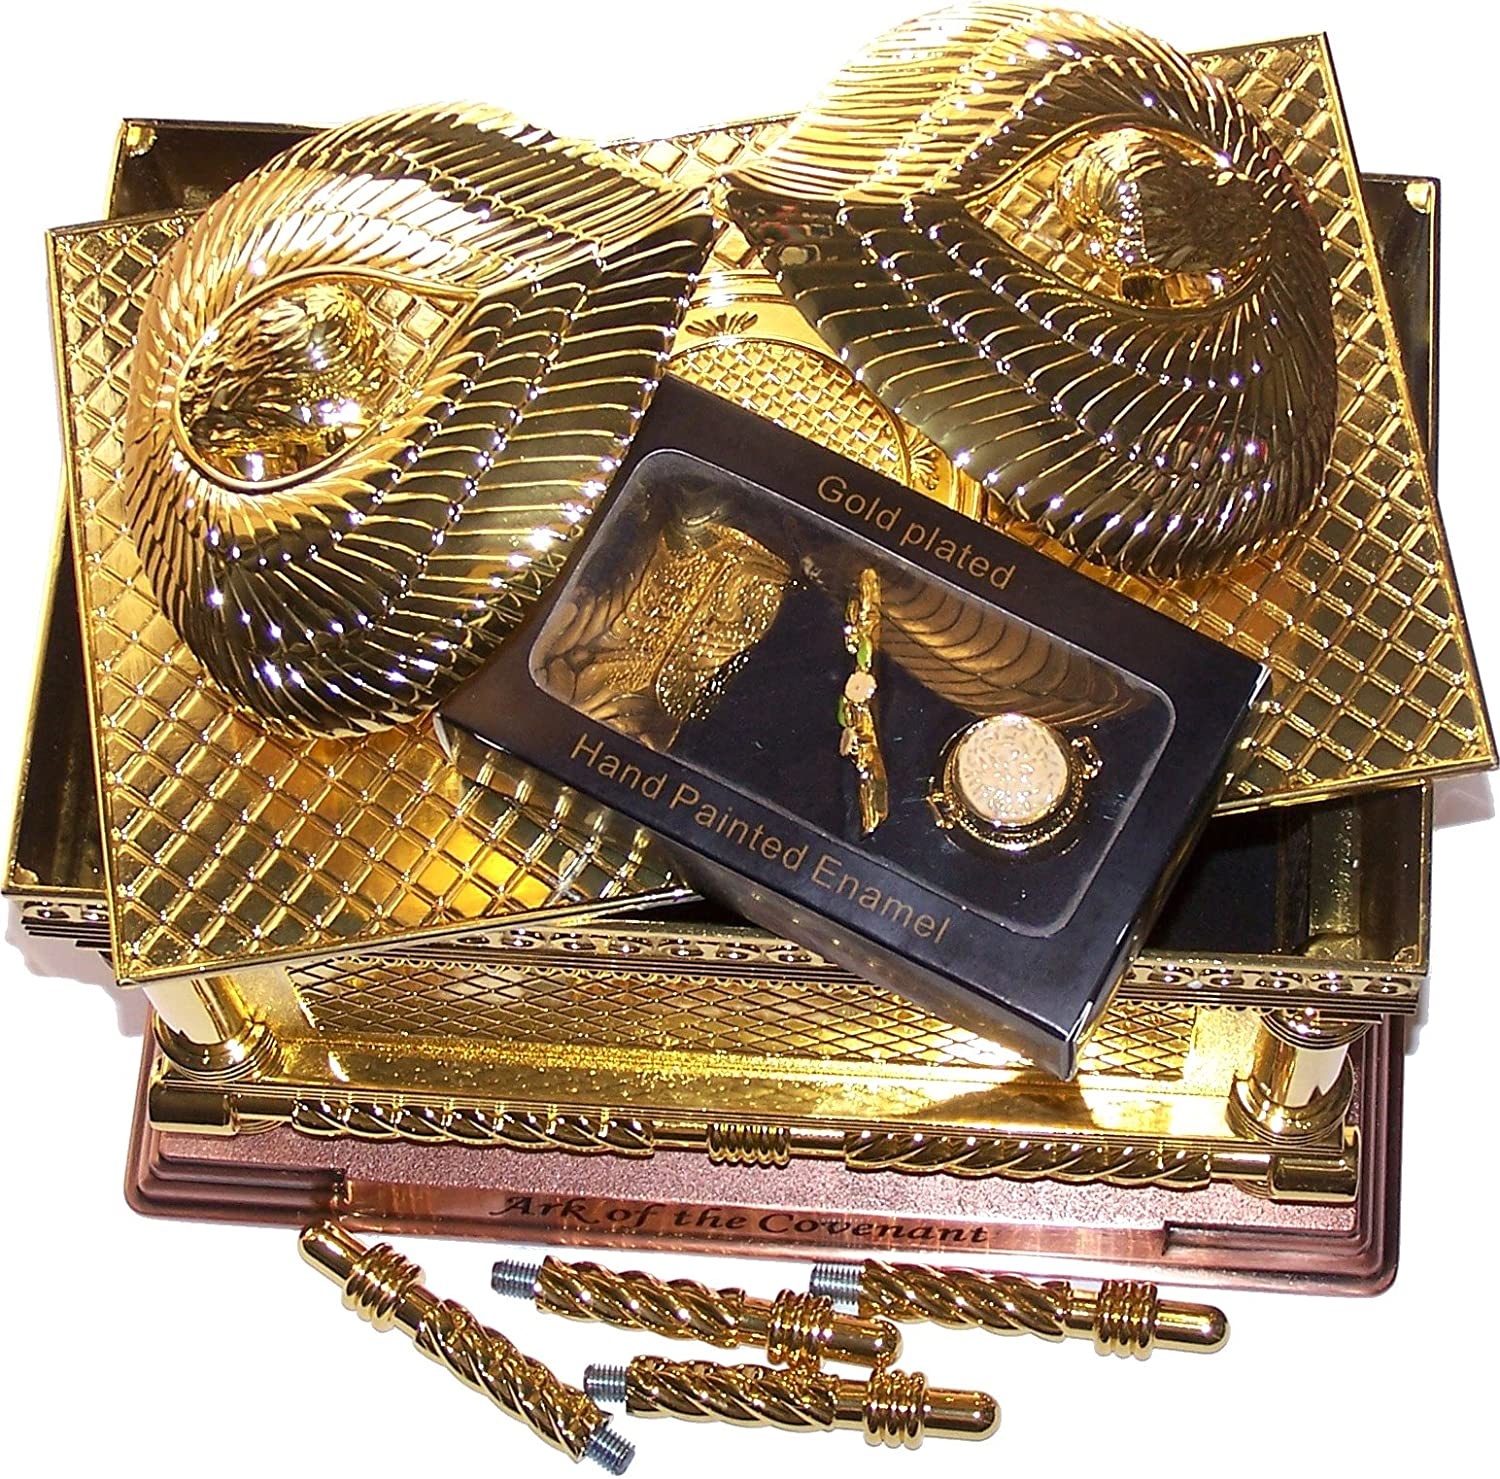 The Ark of The Covenant Gold Plated with Ark Contents Replica Large Holy Land Market ArkLargeSet Aaron Rod, Tablets and Manna